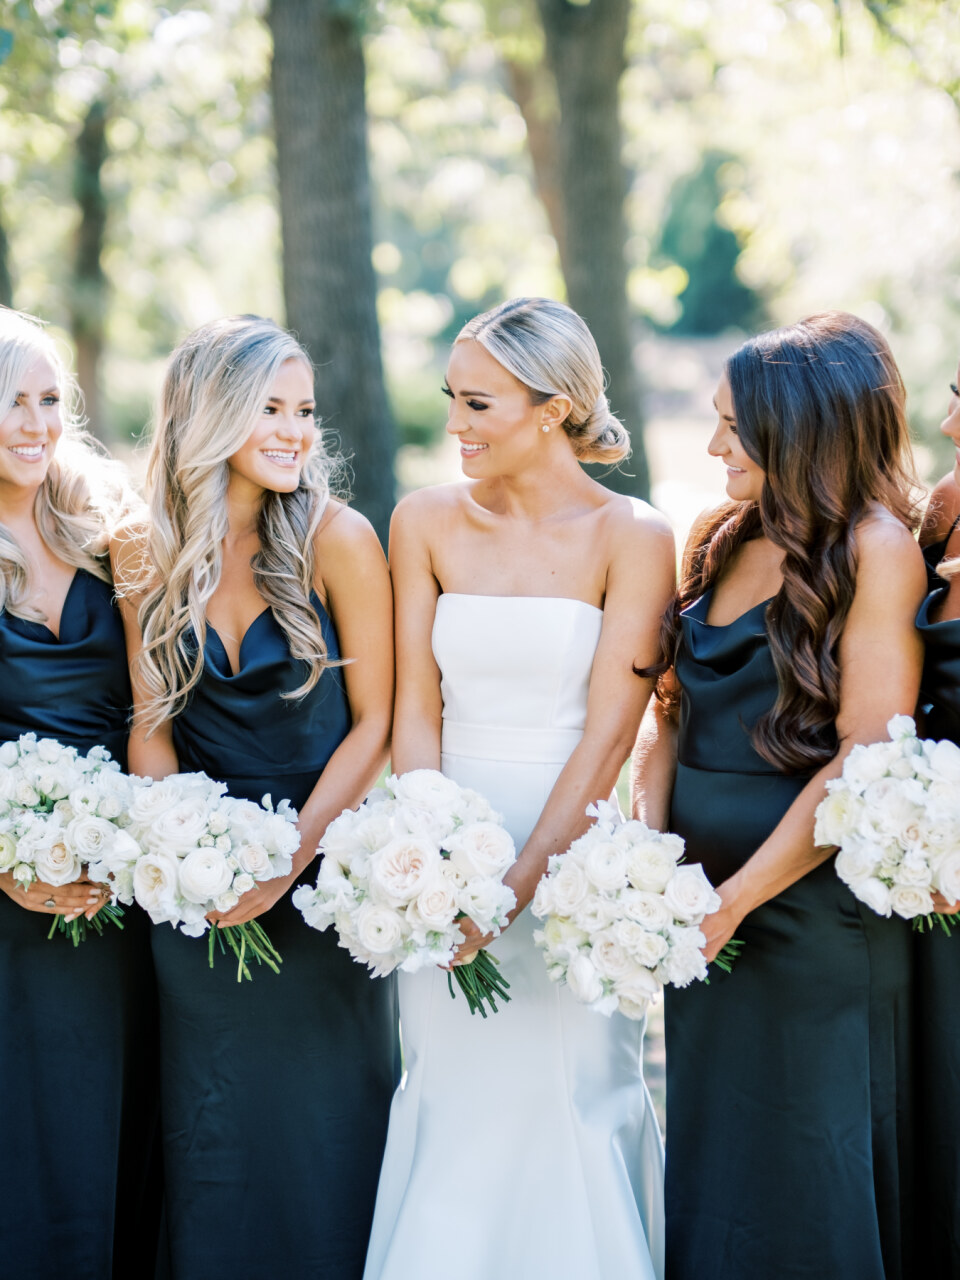 Black Bella Bridesmaid Dresses | Alexa Kay Events